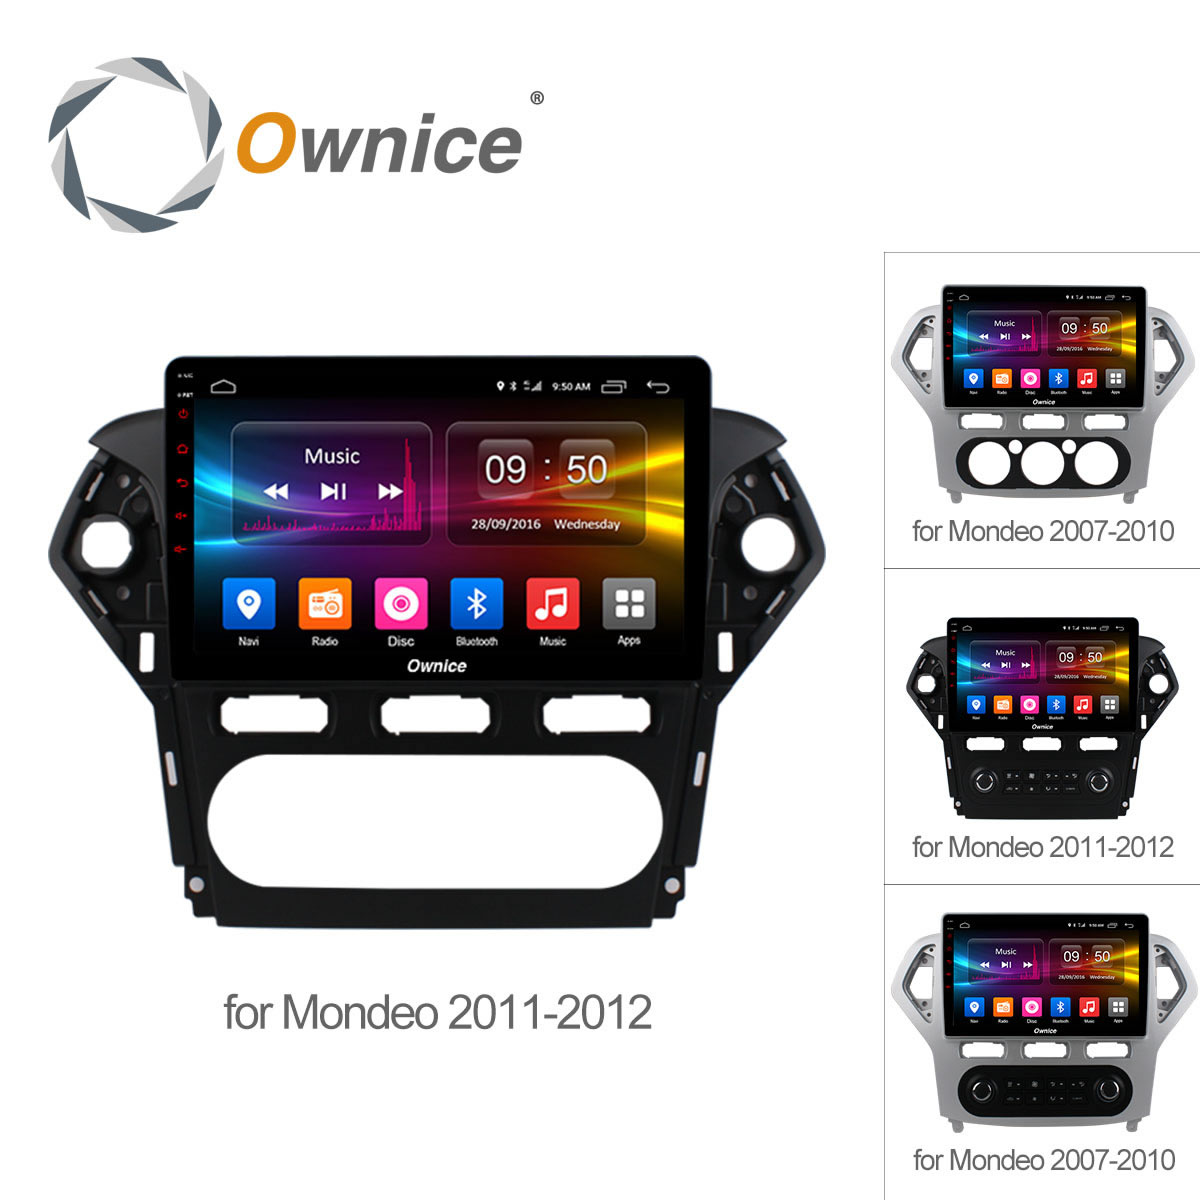 Ownice 10.1 Android 6.0 Octa Core 2.5D IPS car radio for Ford Mondeo 2007- 2012 GPS Audio dvd player Support 32G ROM 4G LTE DVR